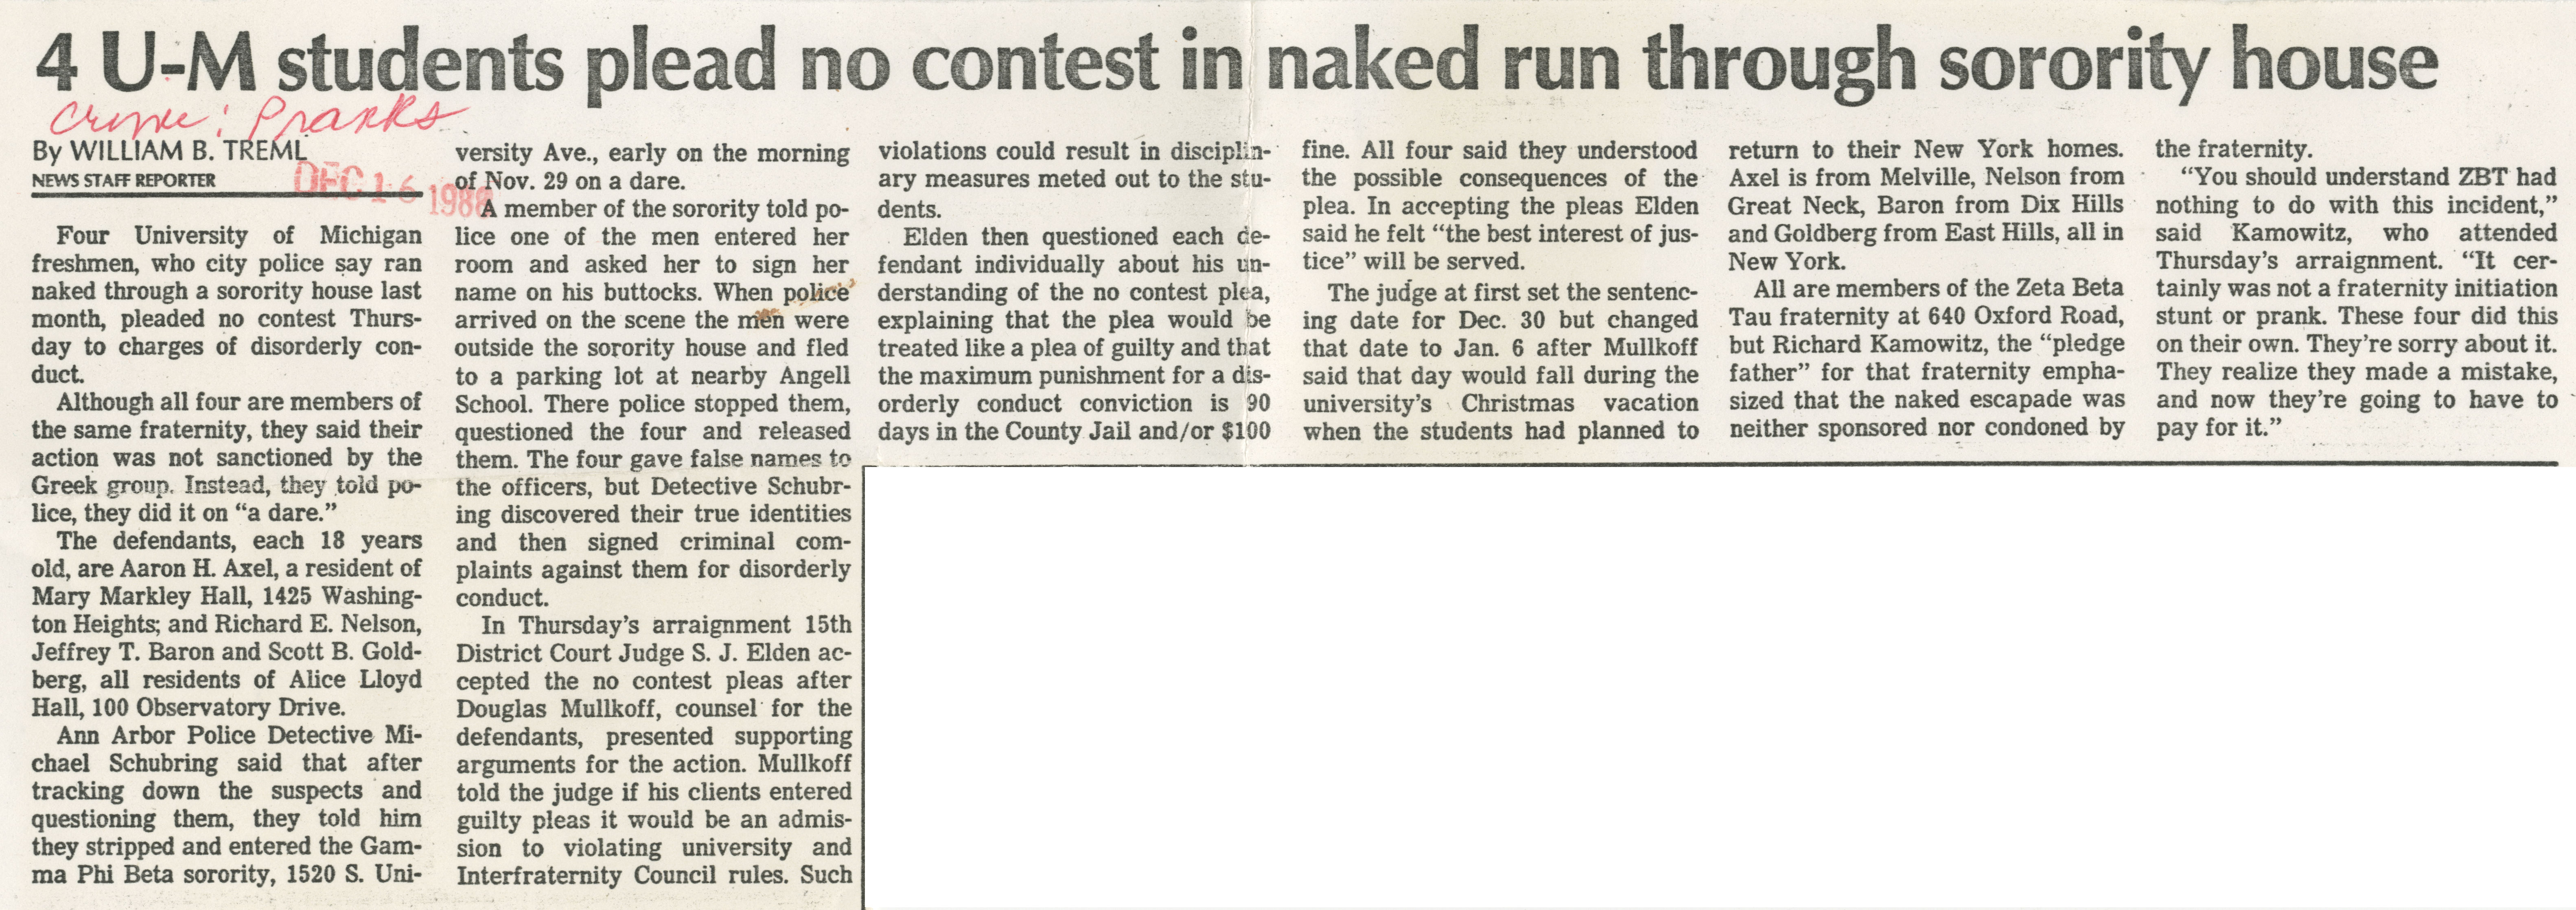 4 U-M Student Please No Contest In Naked Run Through Sorority House image